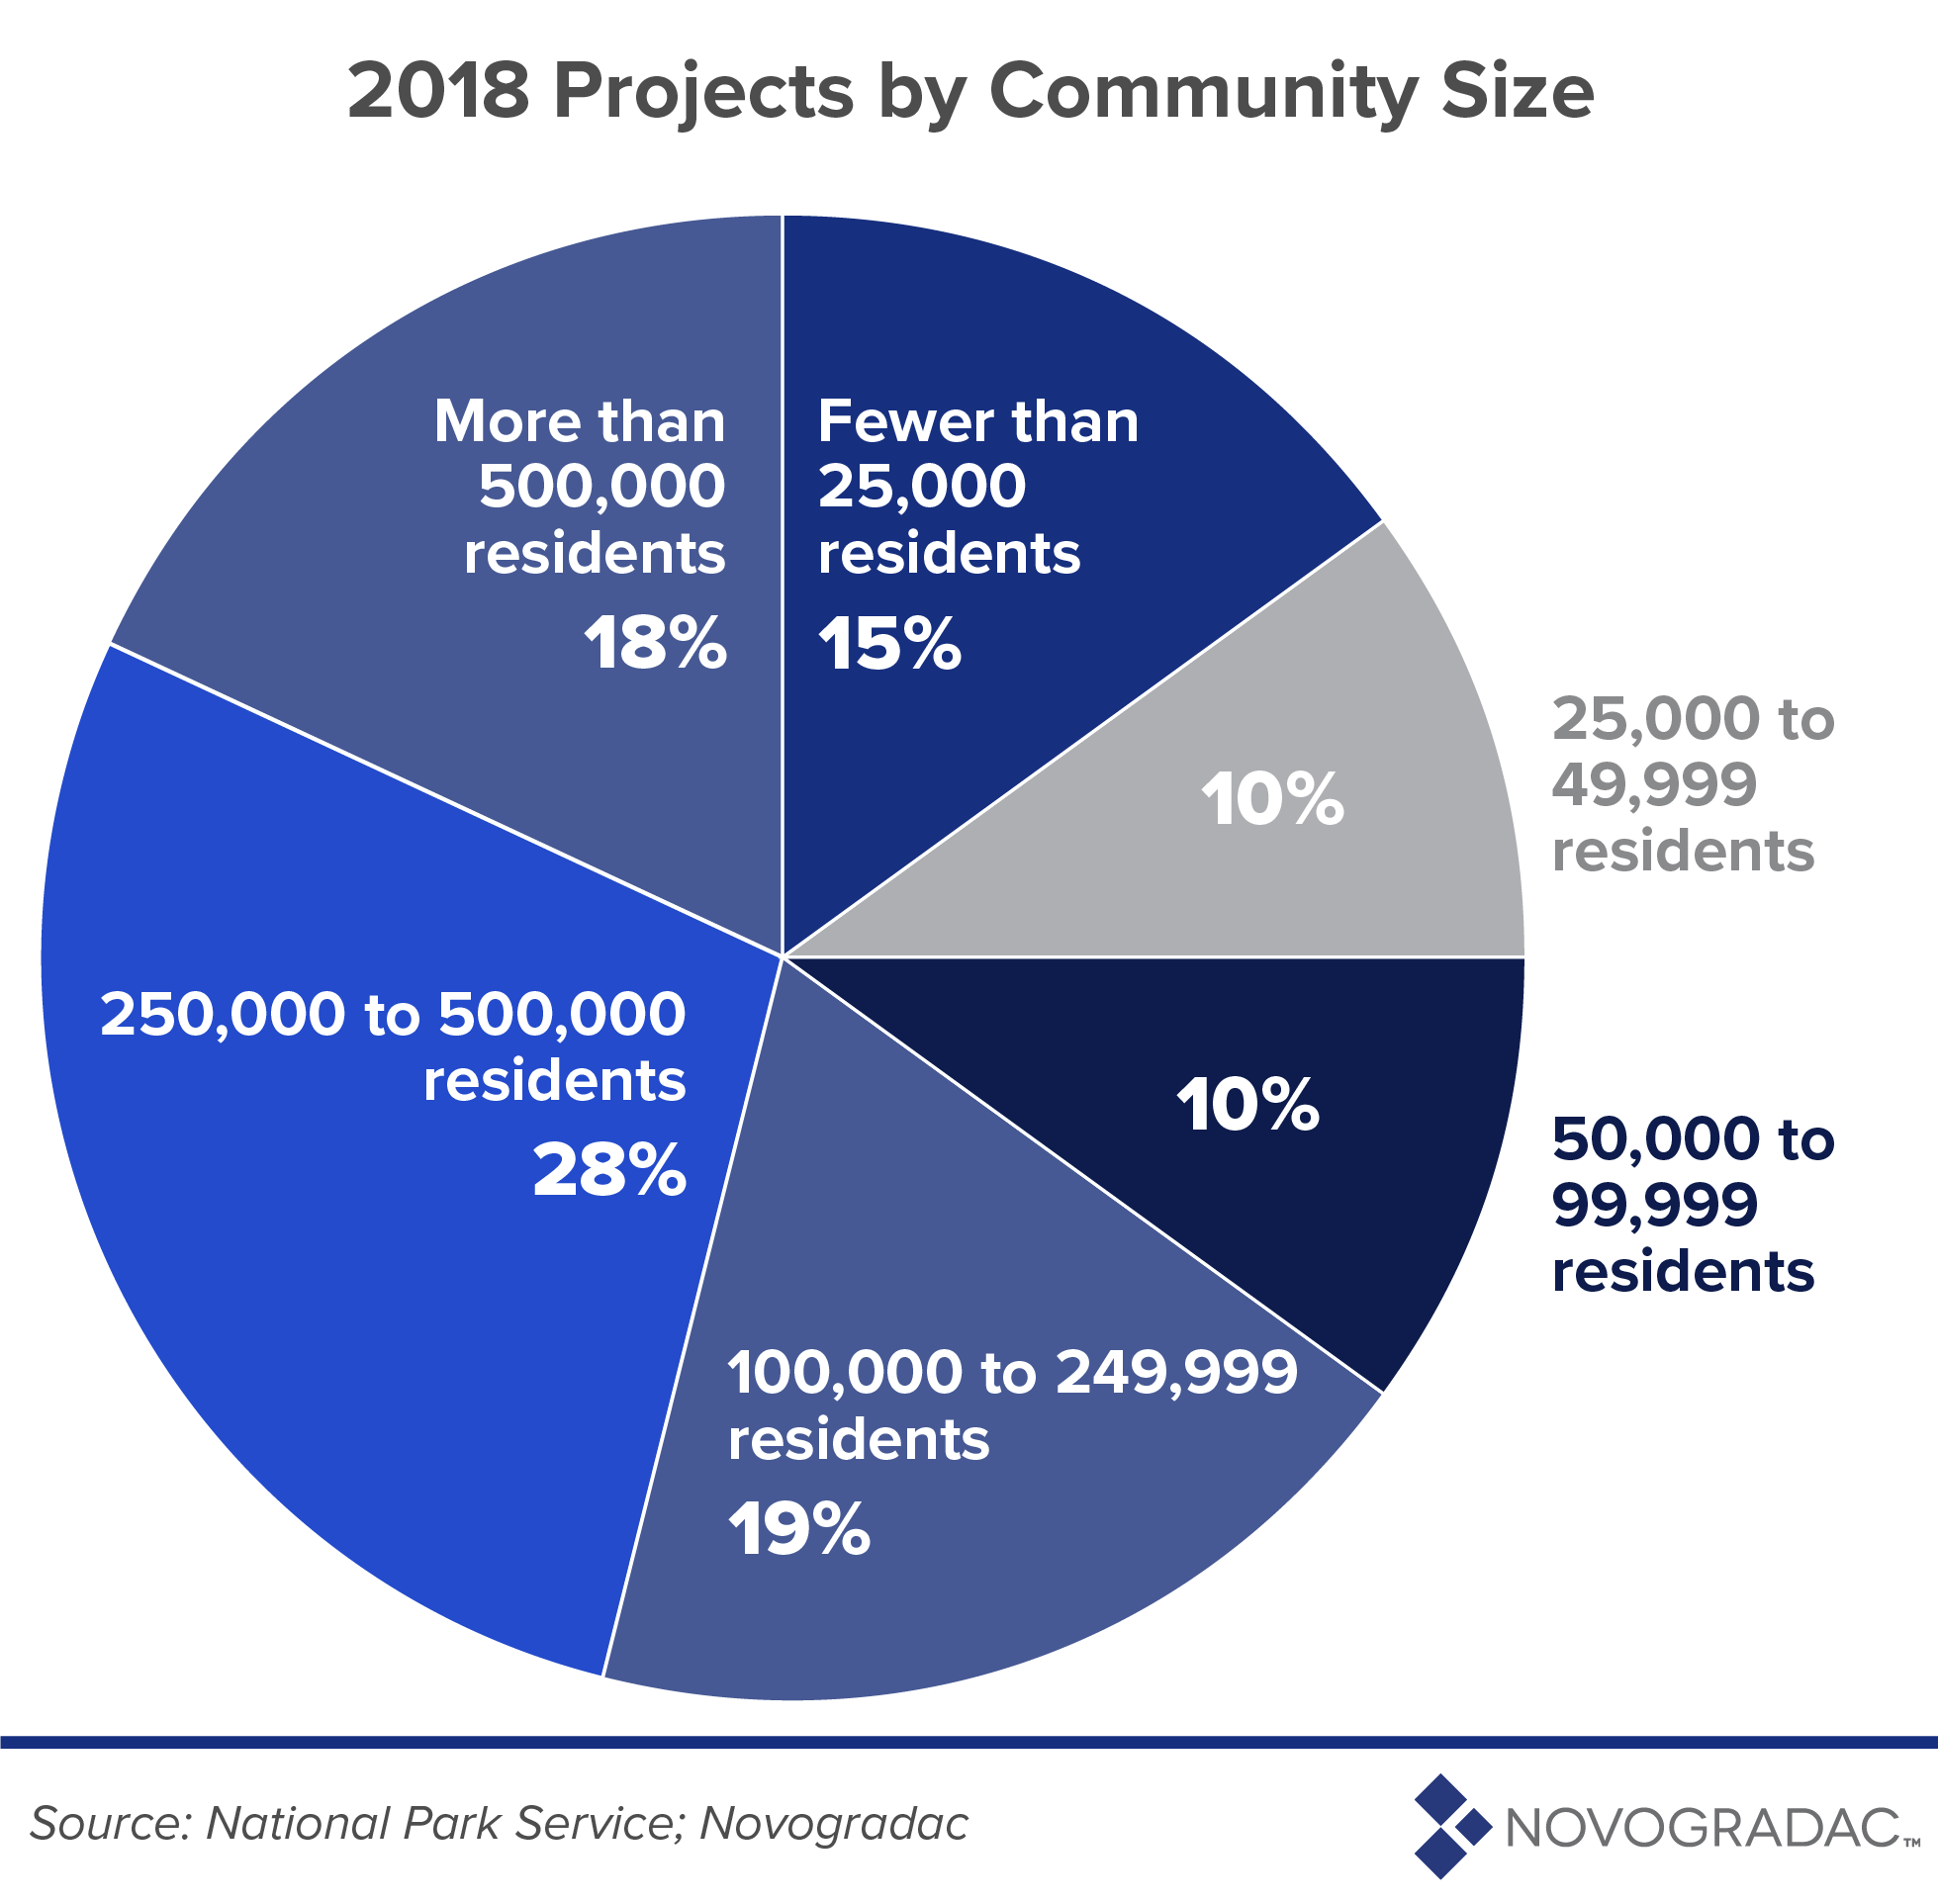 2018 Projects by Community Size Image 4